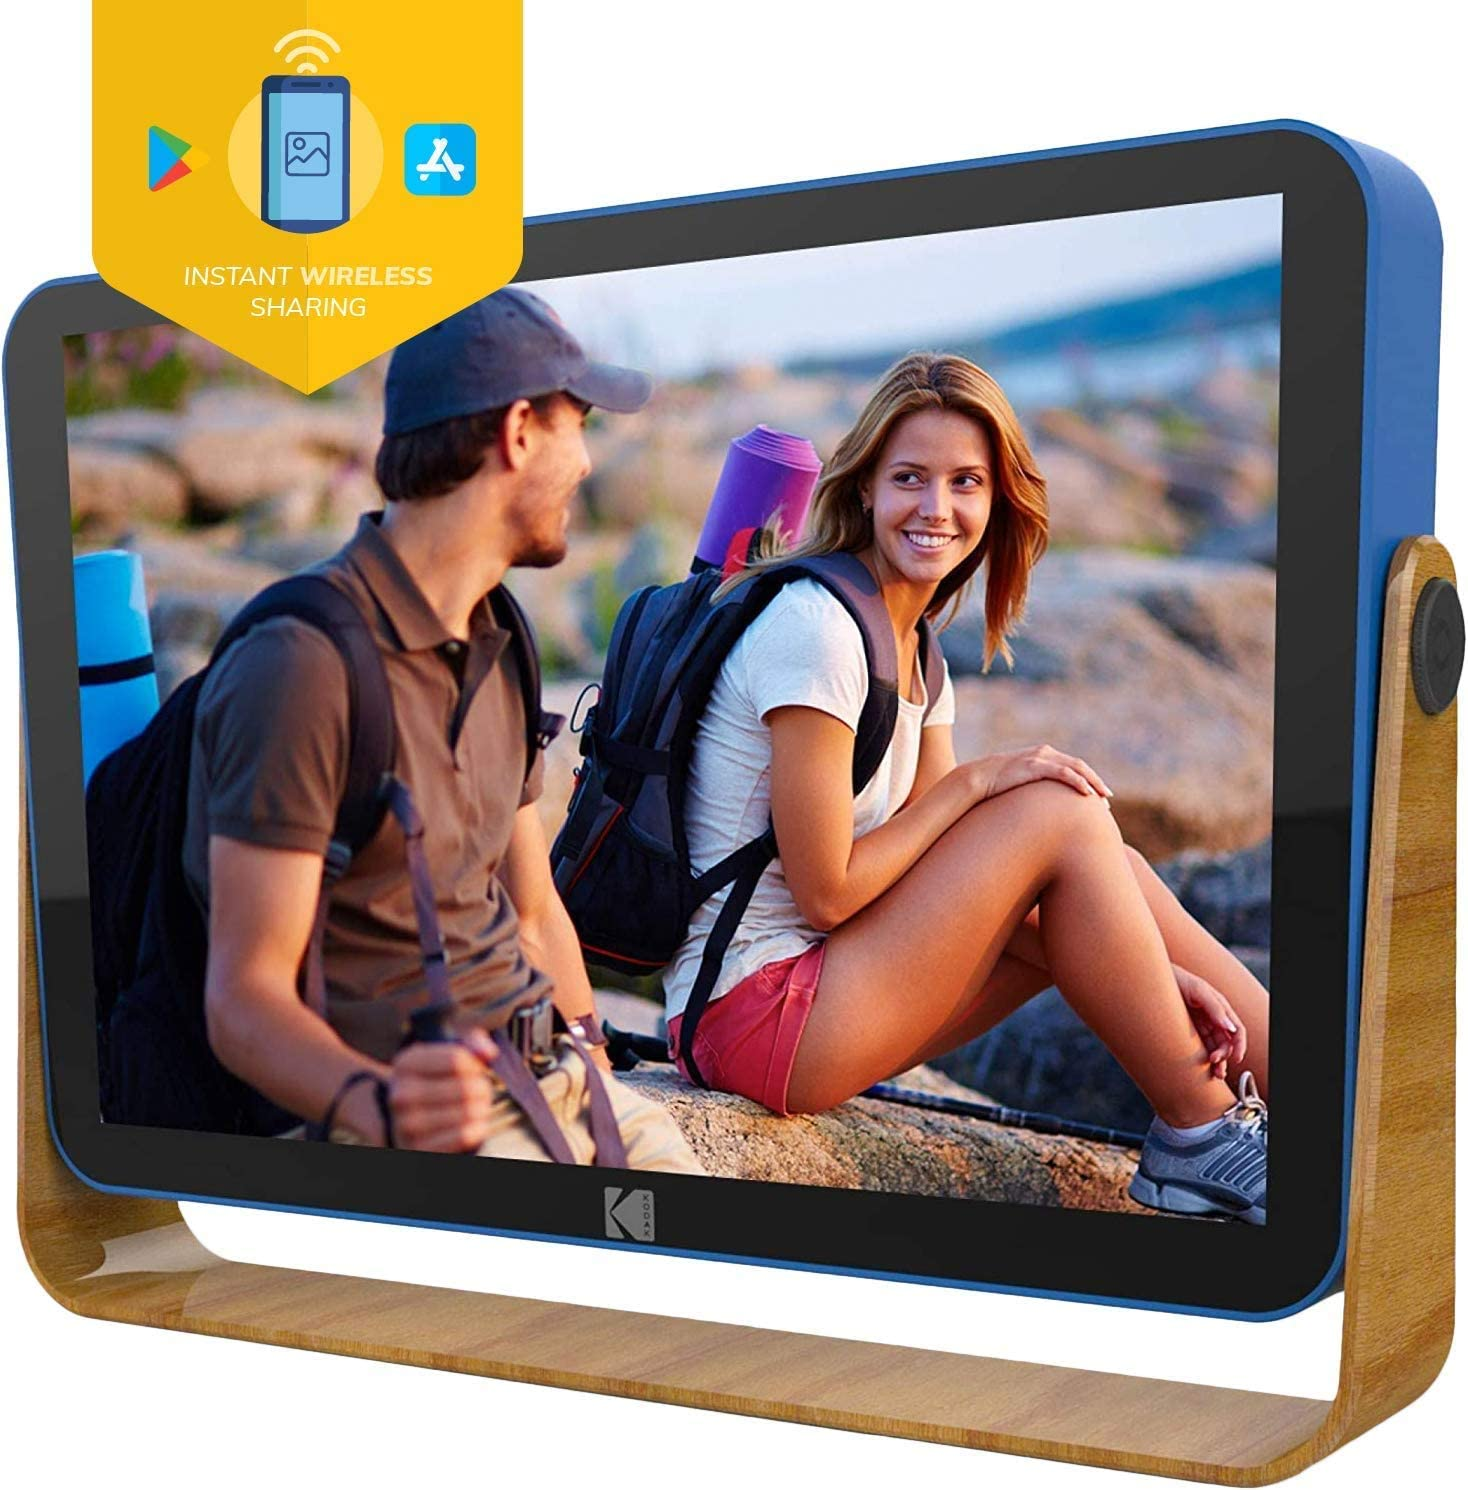 Kodak 10-Inch Smart Touch Screen Rechargeable Digital Picture Frame, Wi-Fi Enabled with HD Photo Display and Music/Video Support, Calendar, Weather and Location Updates (RWF-108) - Ocean Blue